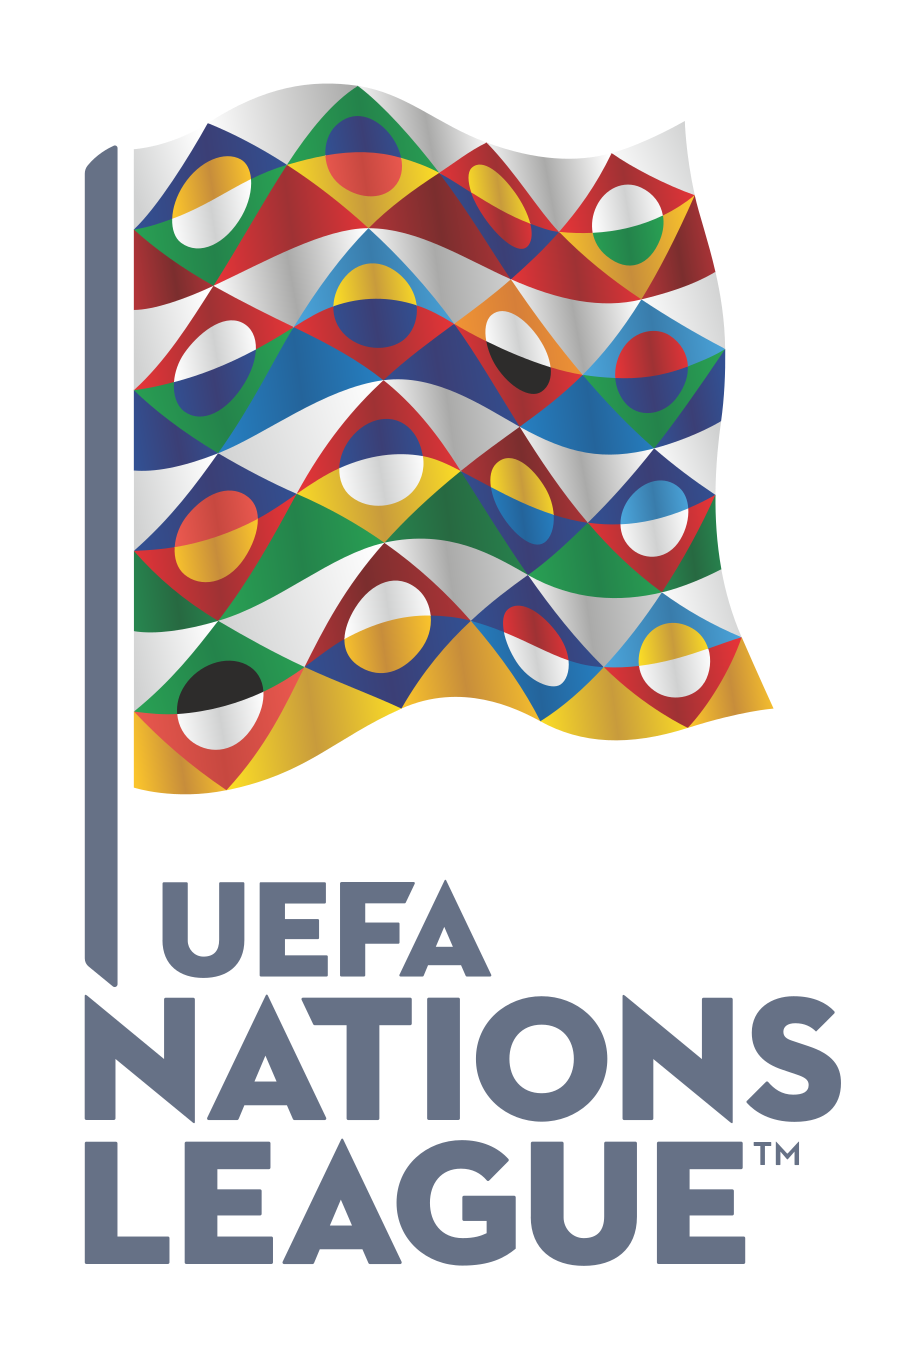 [PRONOSTICI] 3ª e 4ª Giornata | UEFA Nations League Logo211